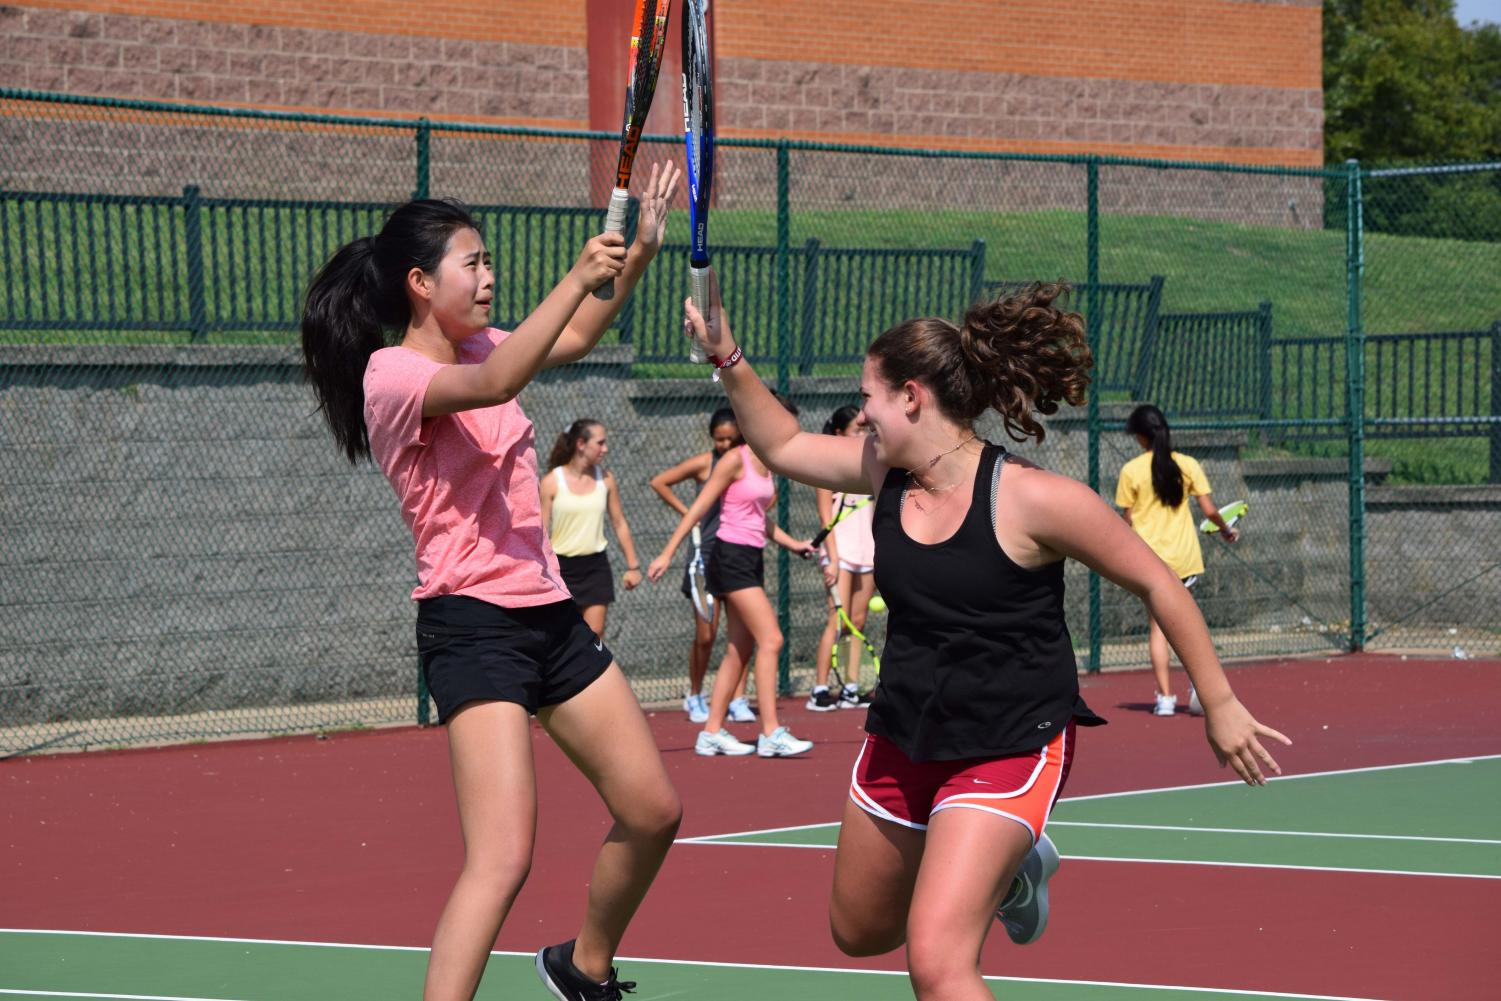 Tamar Lerner and Irene Zhang hit racquets after winning a point at practice.